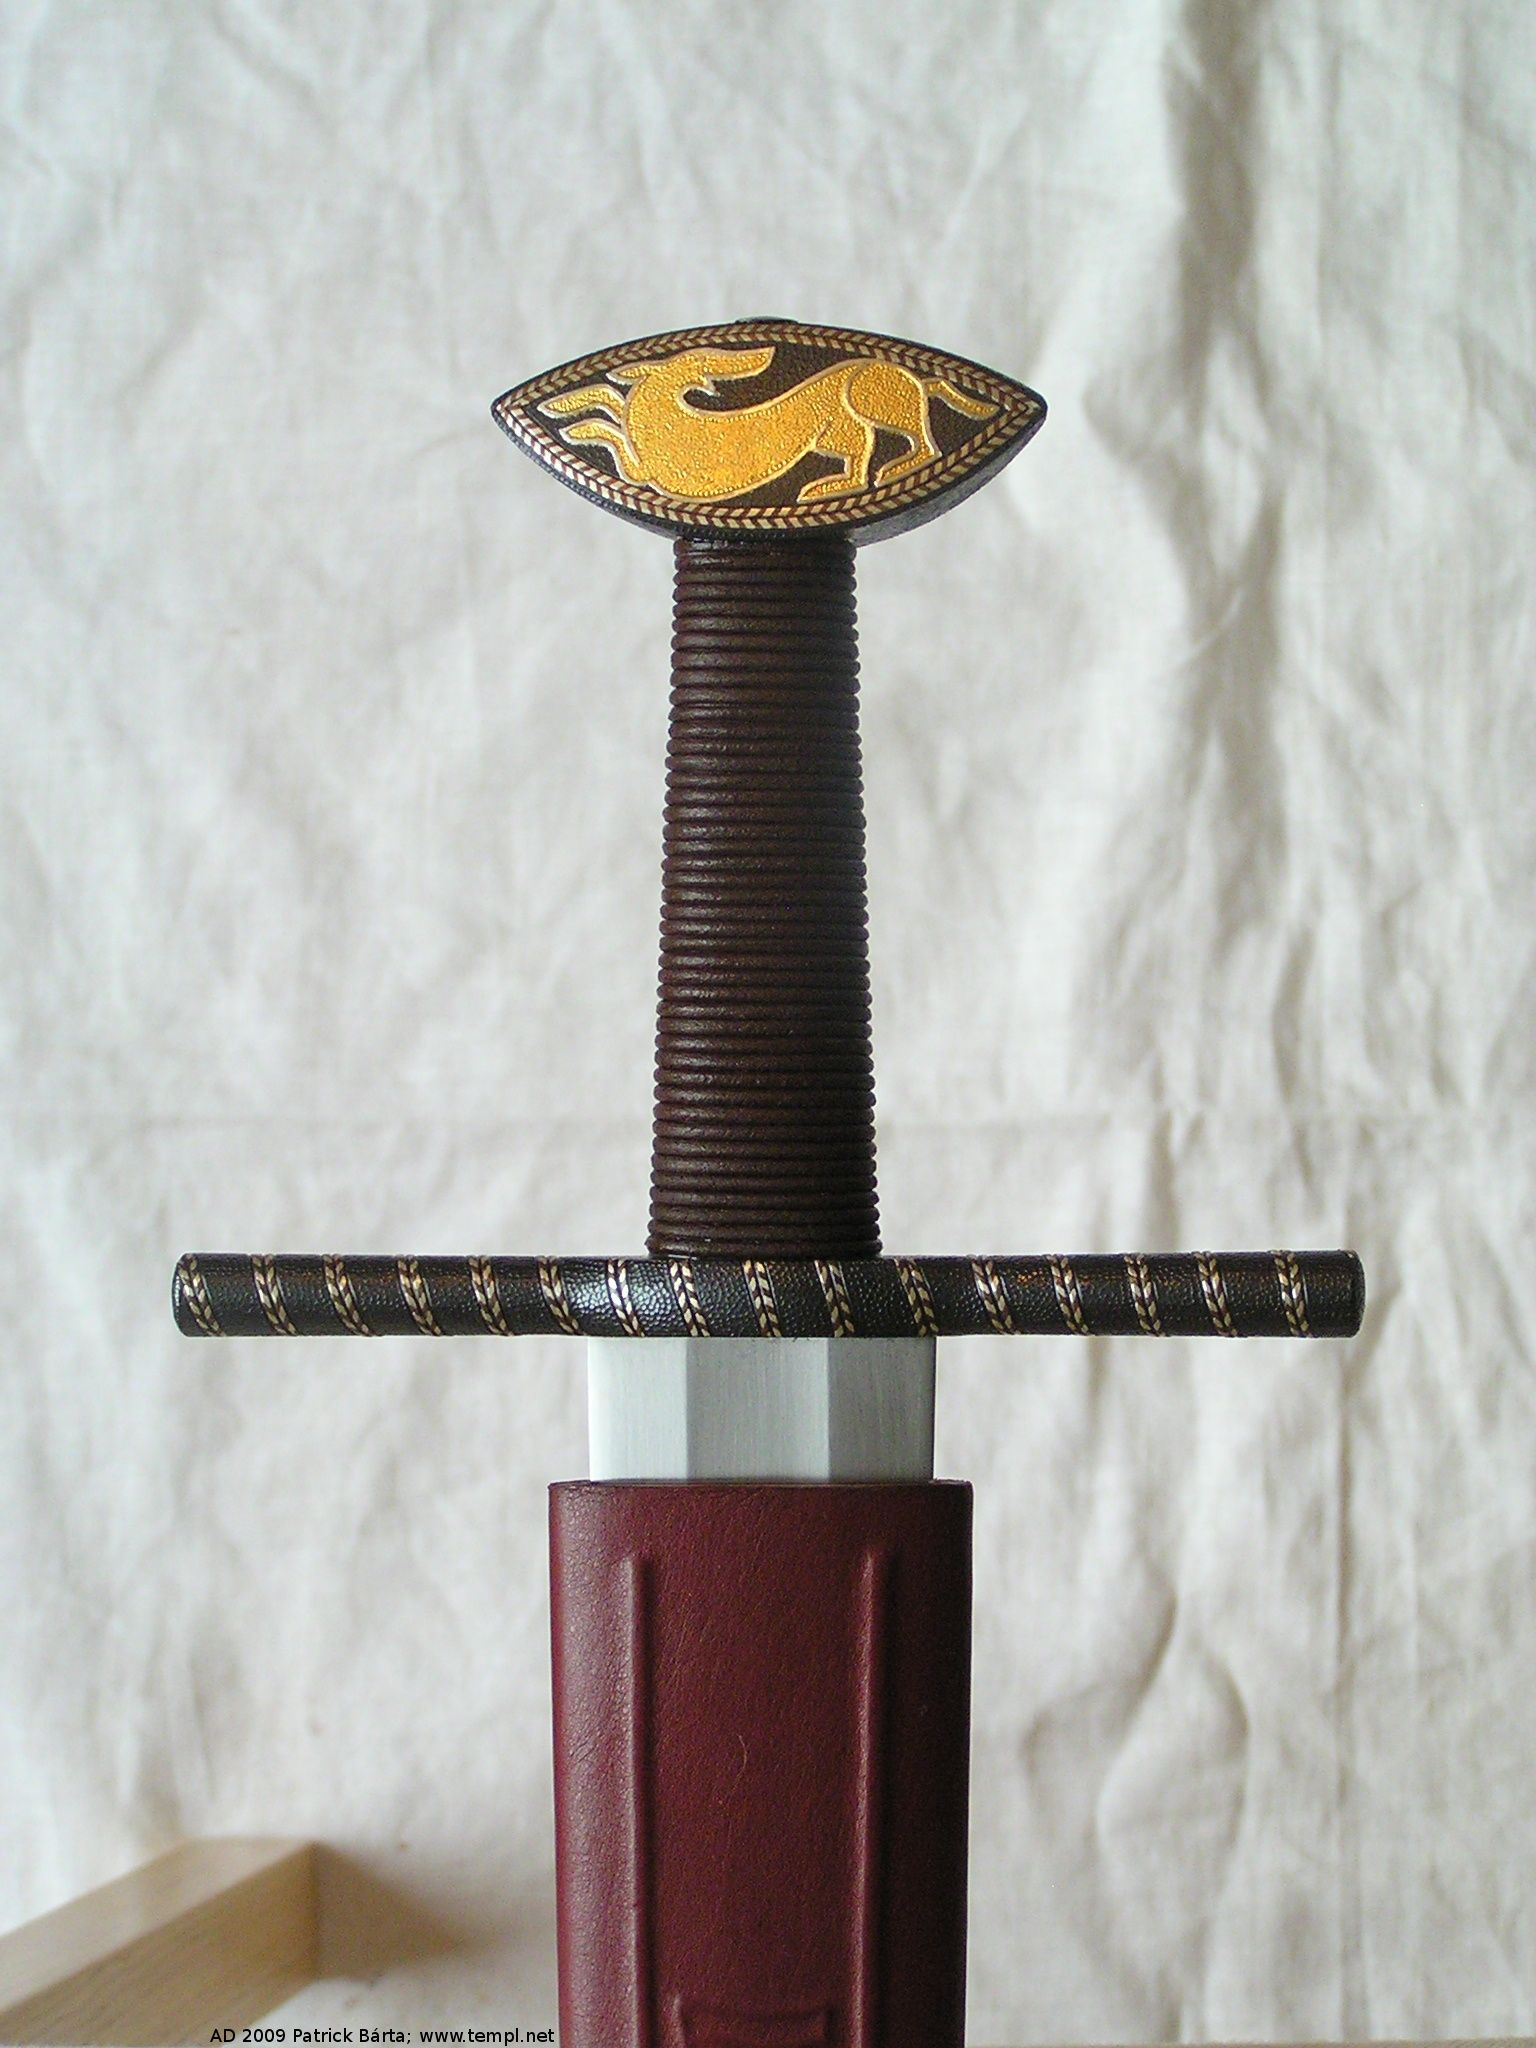 12th century museum replica by Patrick Bartl. Also a great website for early swords with lots on the making of early pattern welded blades.